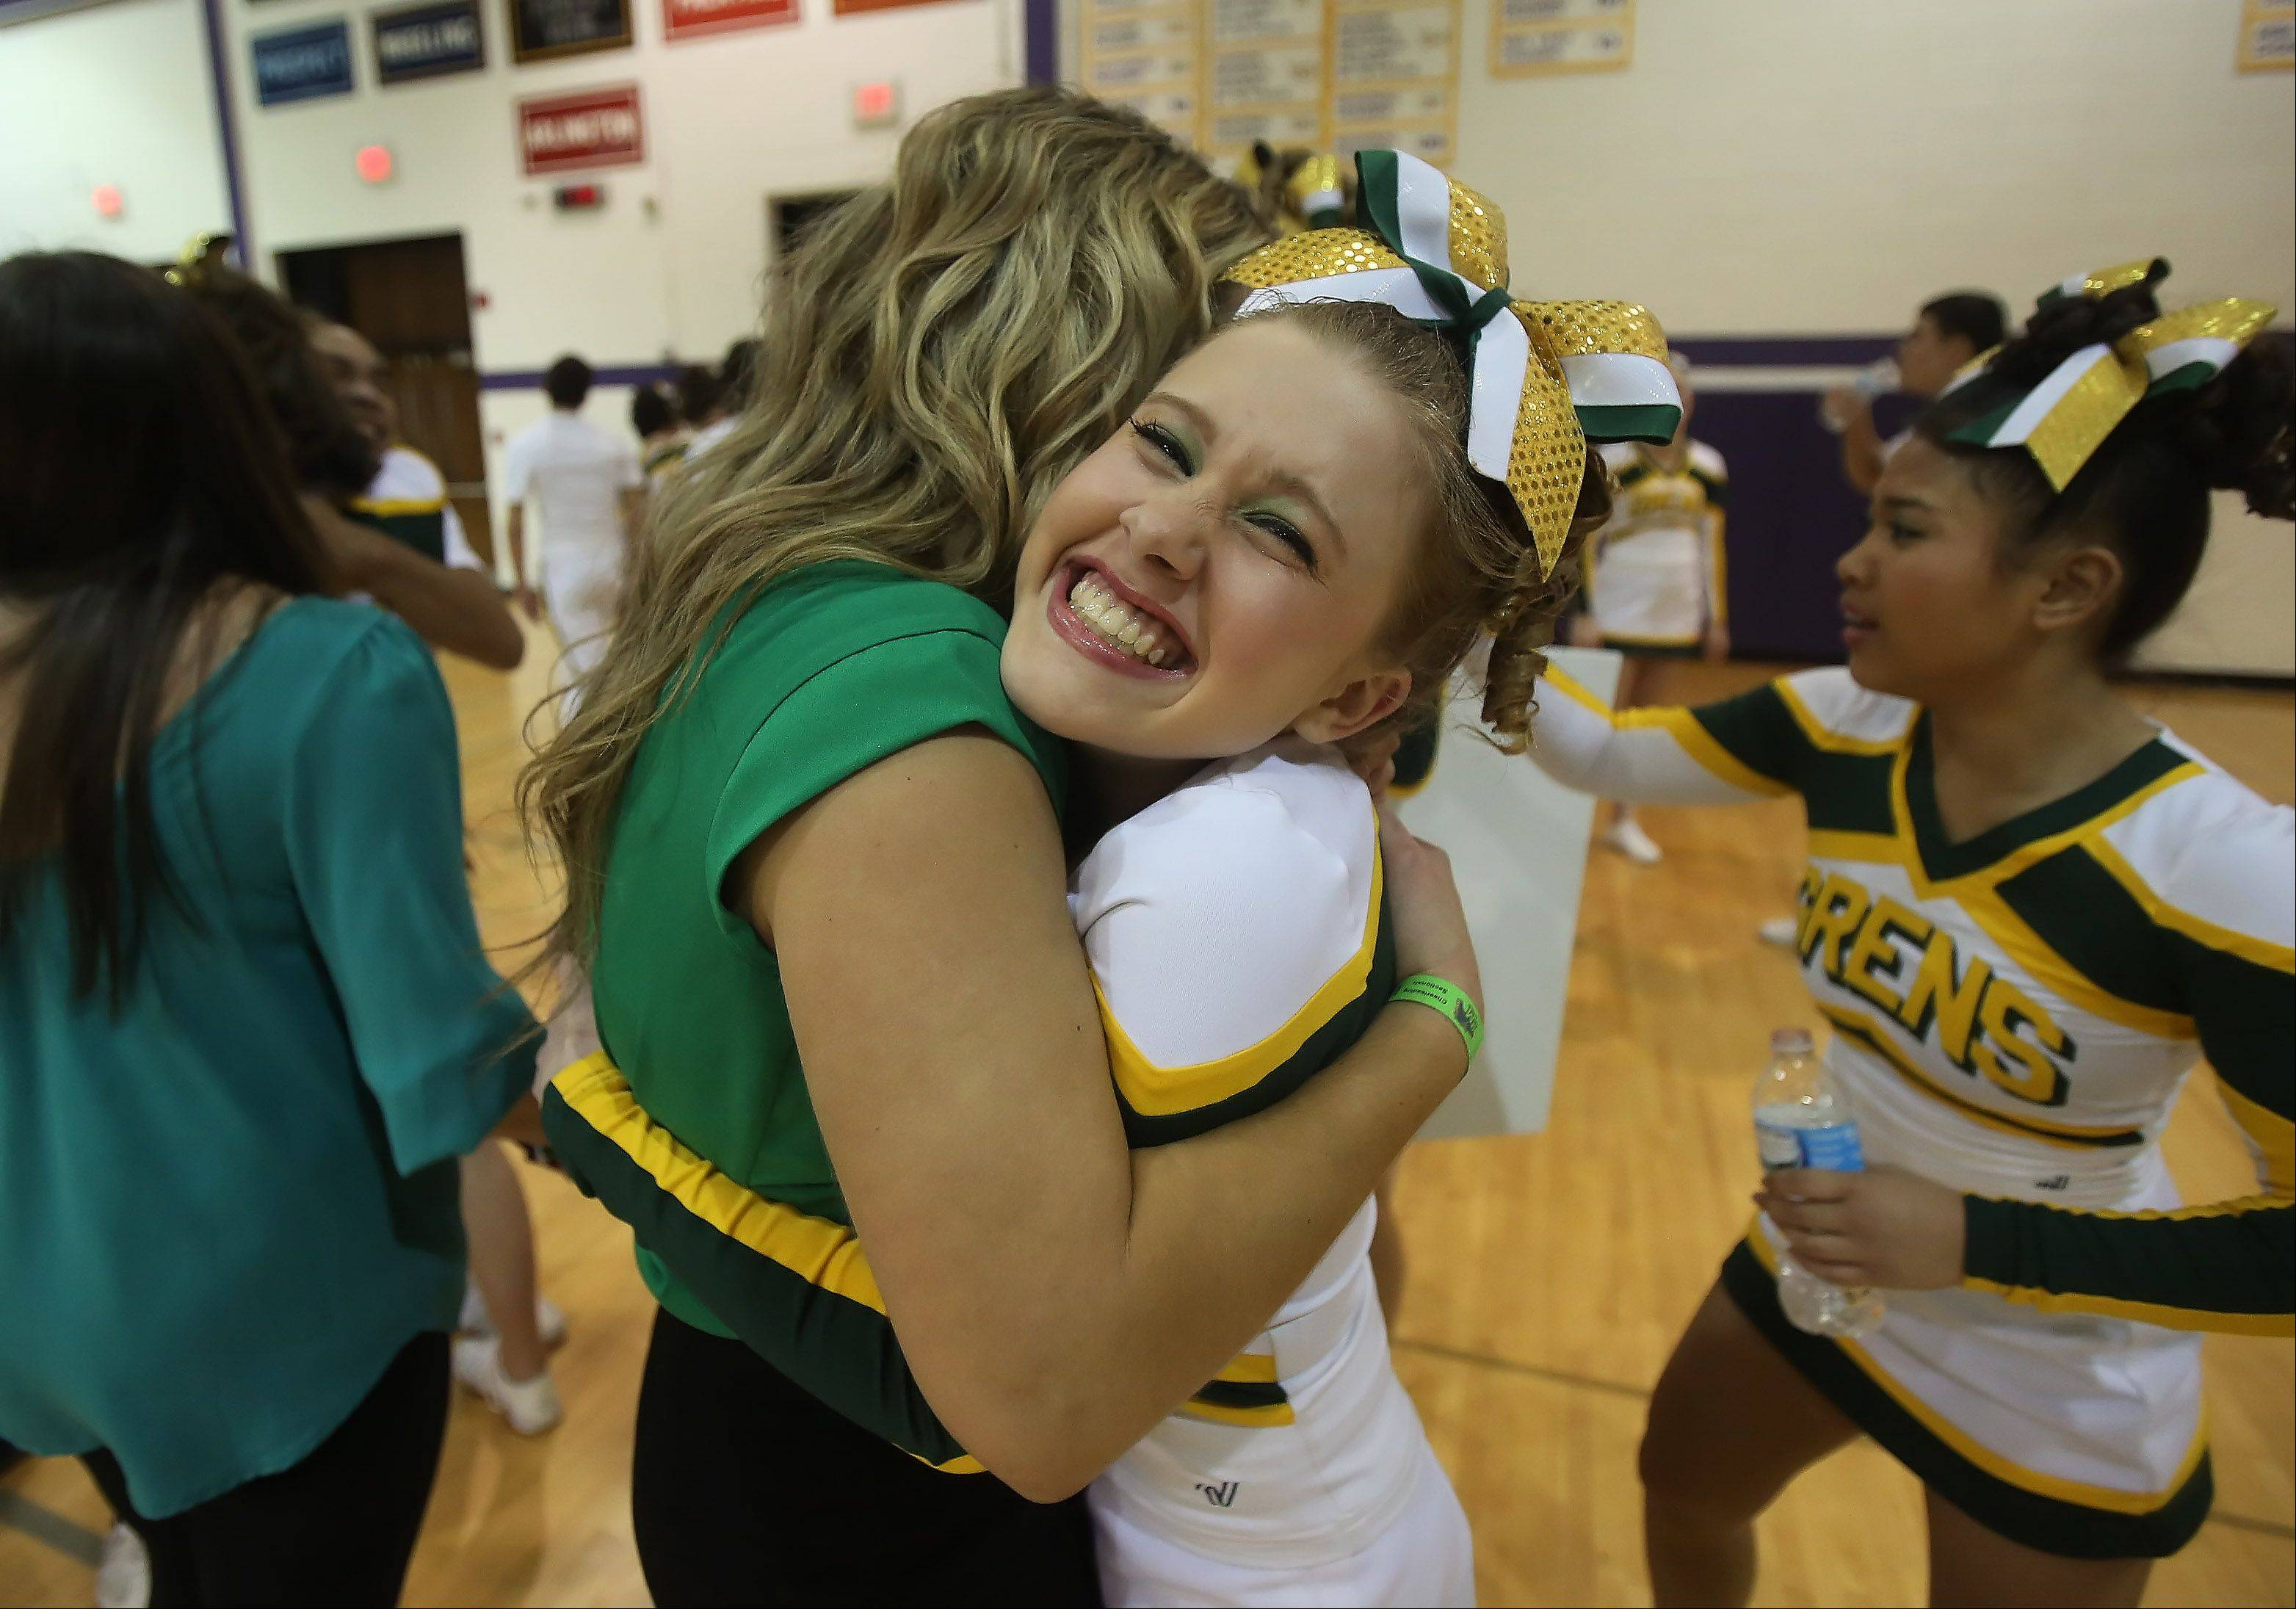 Elk Grove High School cheerleader Danielle Haffey hugs her coach Danielle Damato after the team competed in the Coed Team category during the IHSA Cheerleading Sectional Sunday hosted by Rolling Meadows High School.